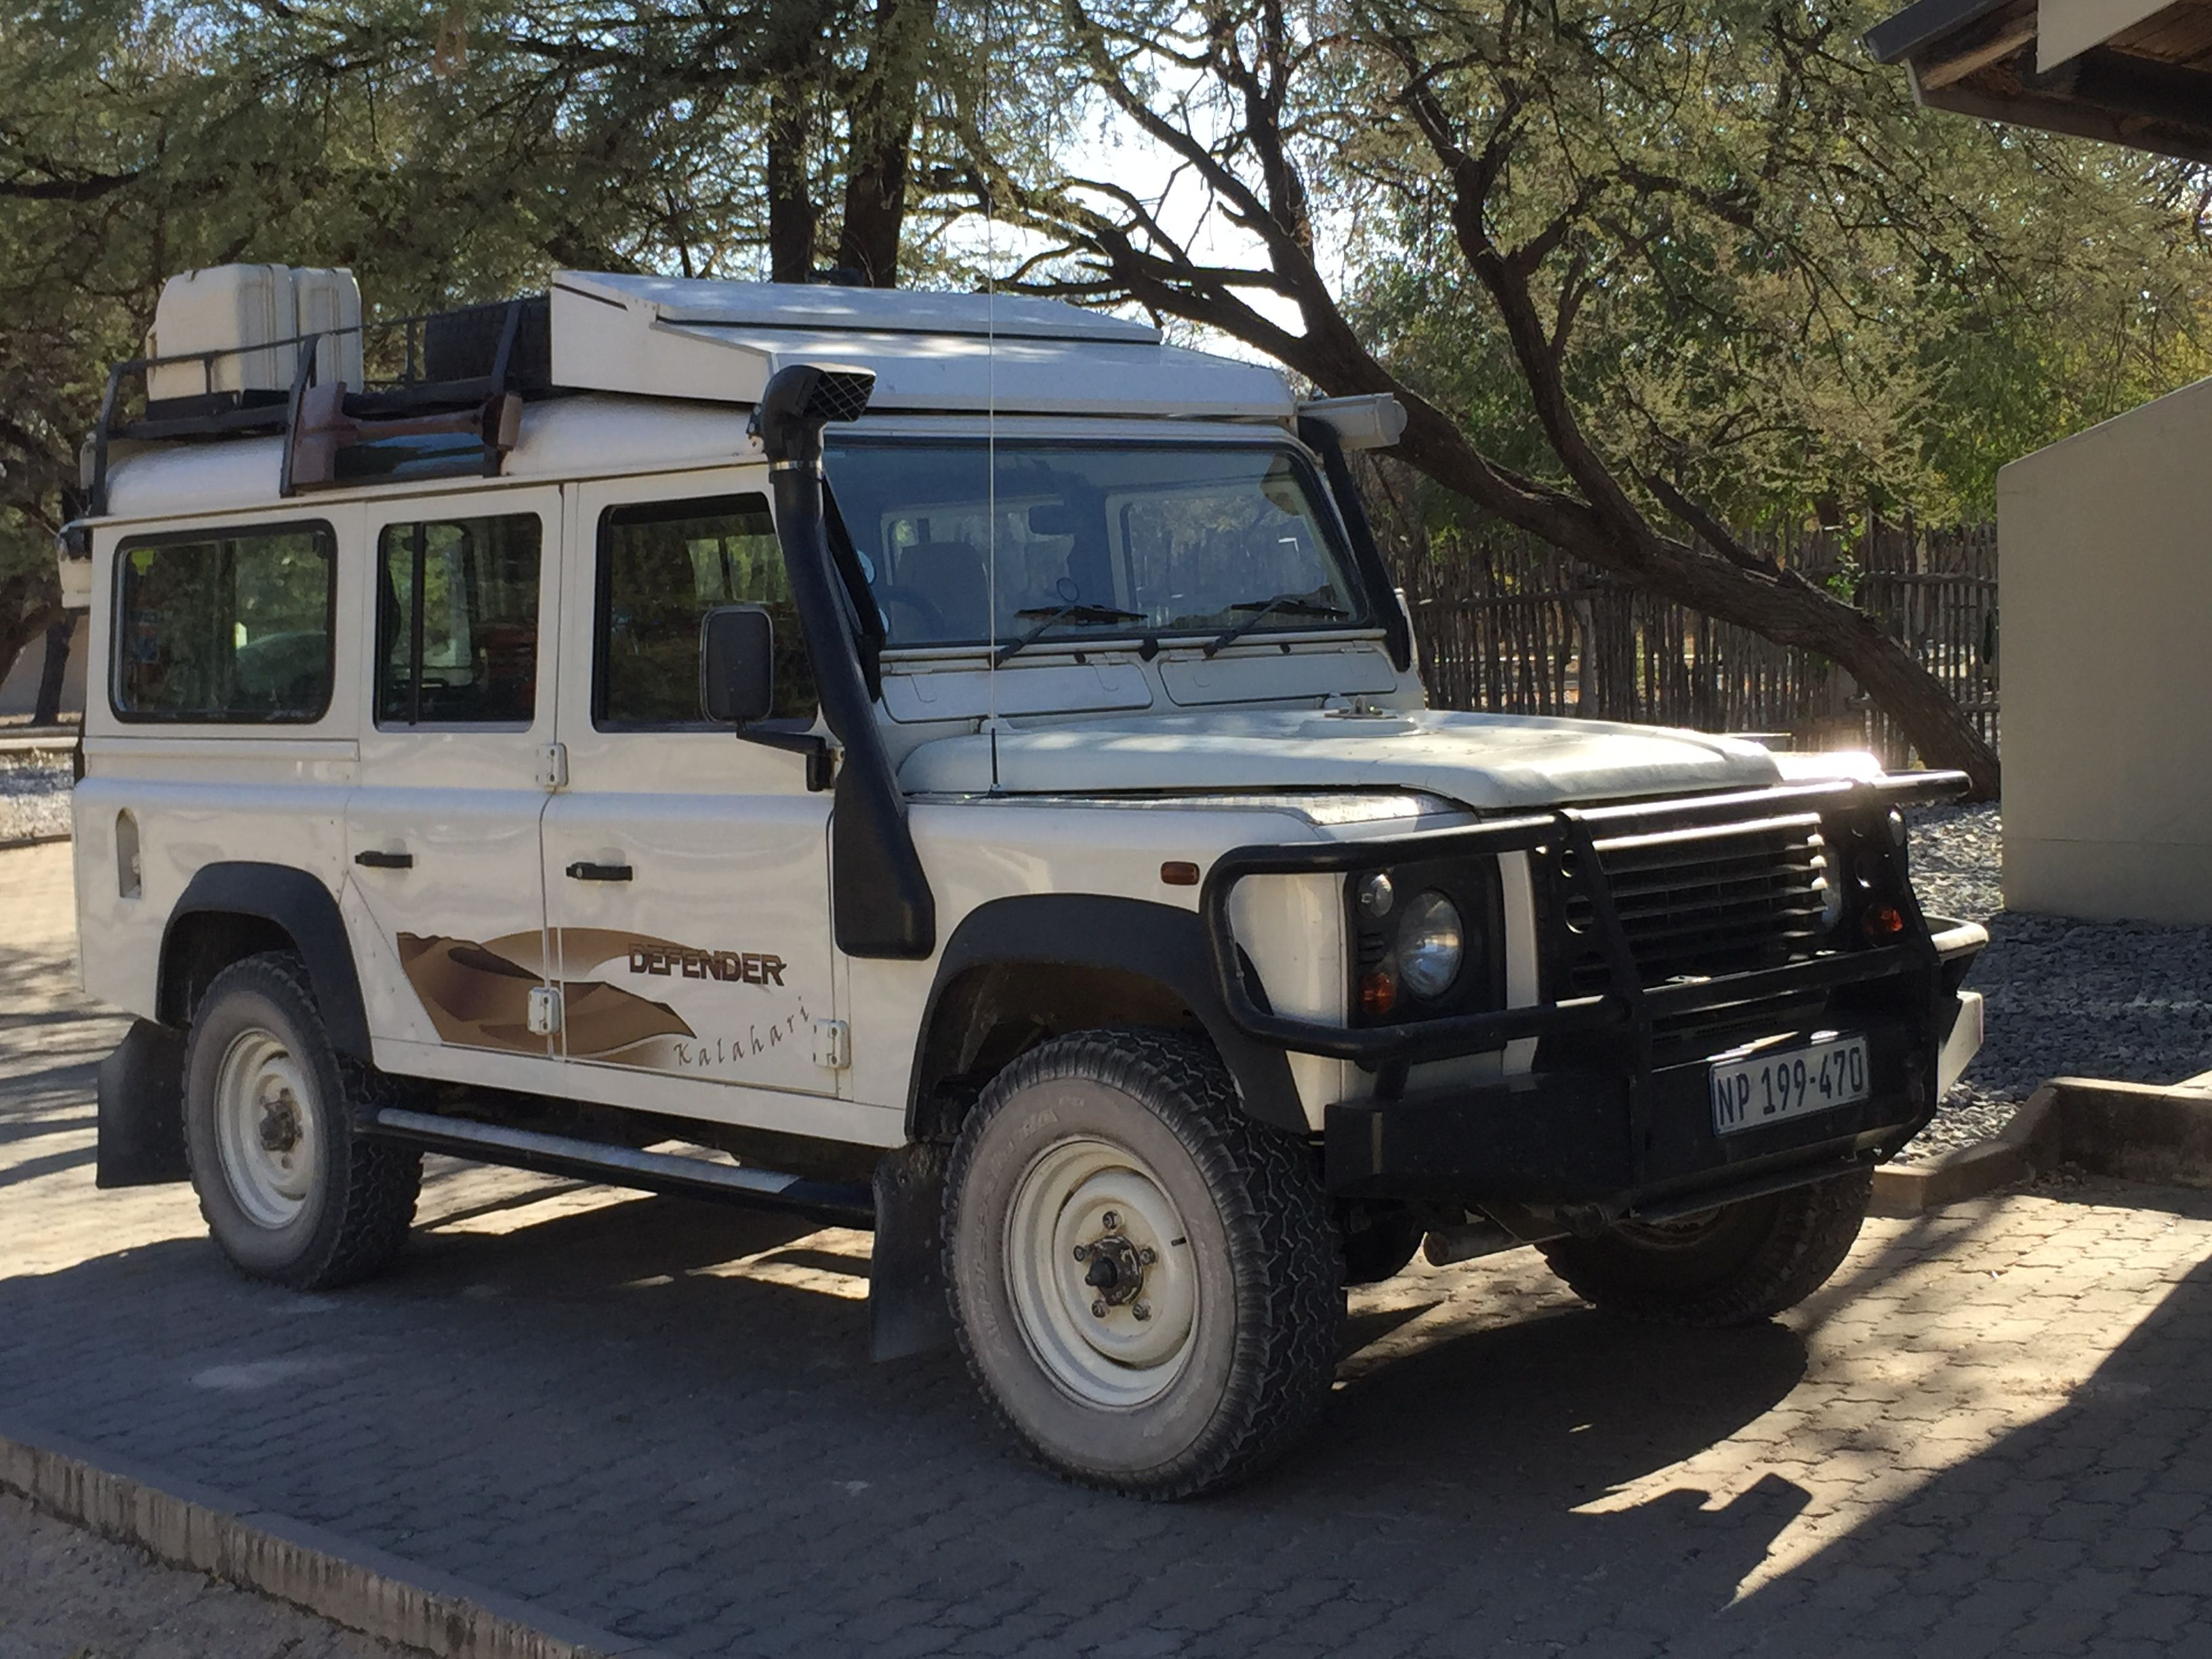 Pin by Will Headapohl on Land Rover Defender Kalahari Edition in